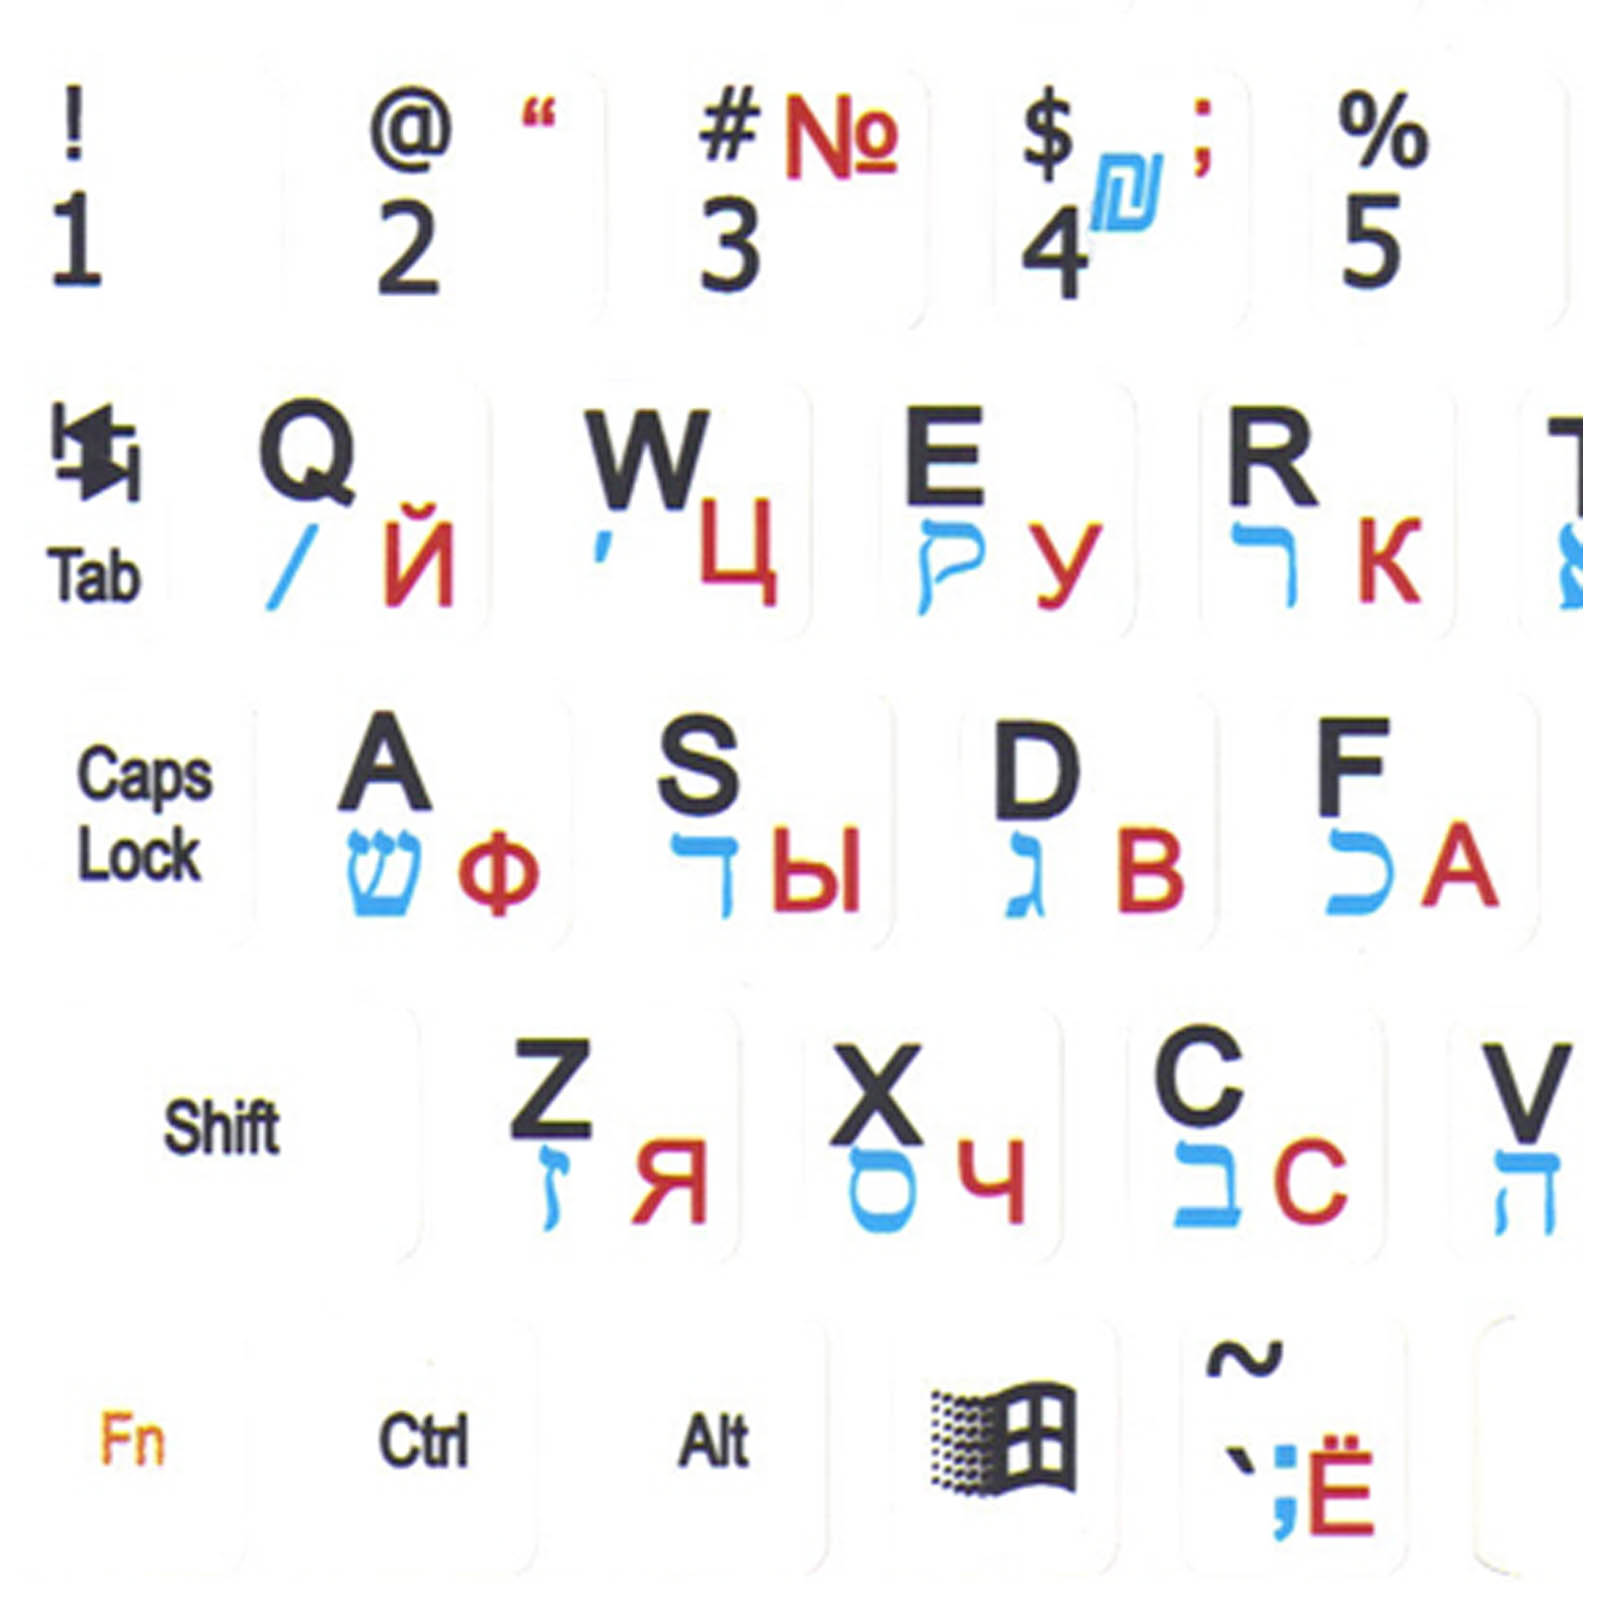 Hebrew-Russian-English keyboard sticker for mini keyboard small label letters for computer white